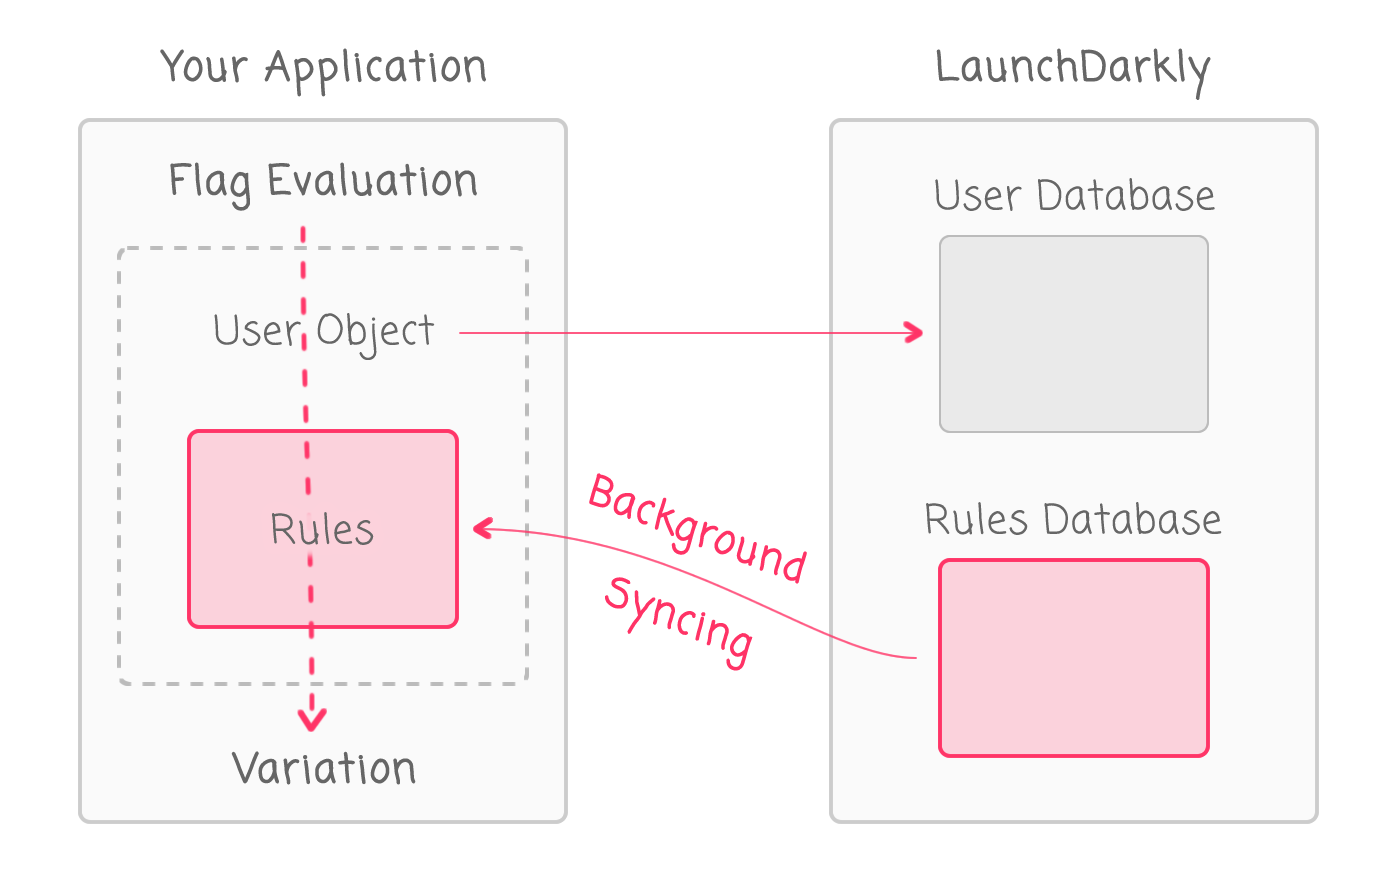 LaunchDarkly architecture and rules engine.